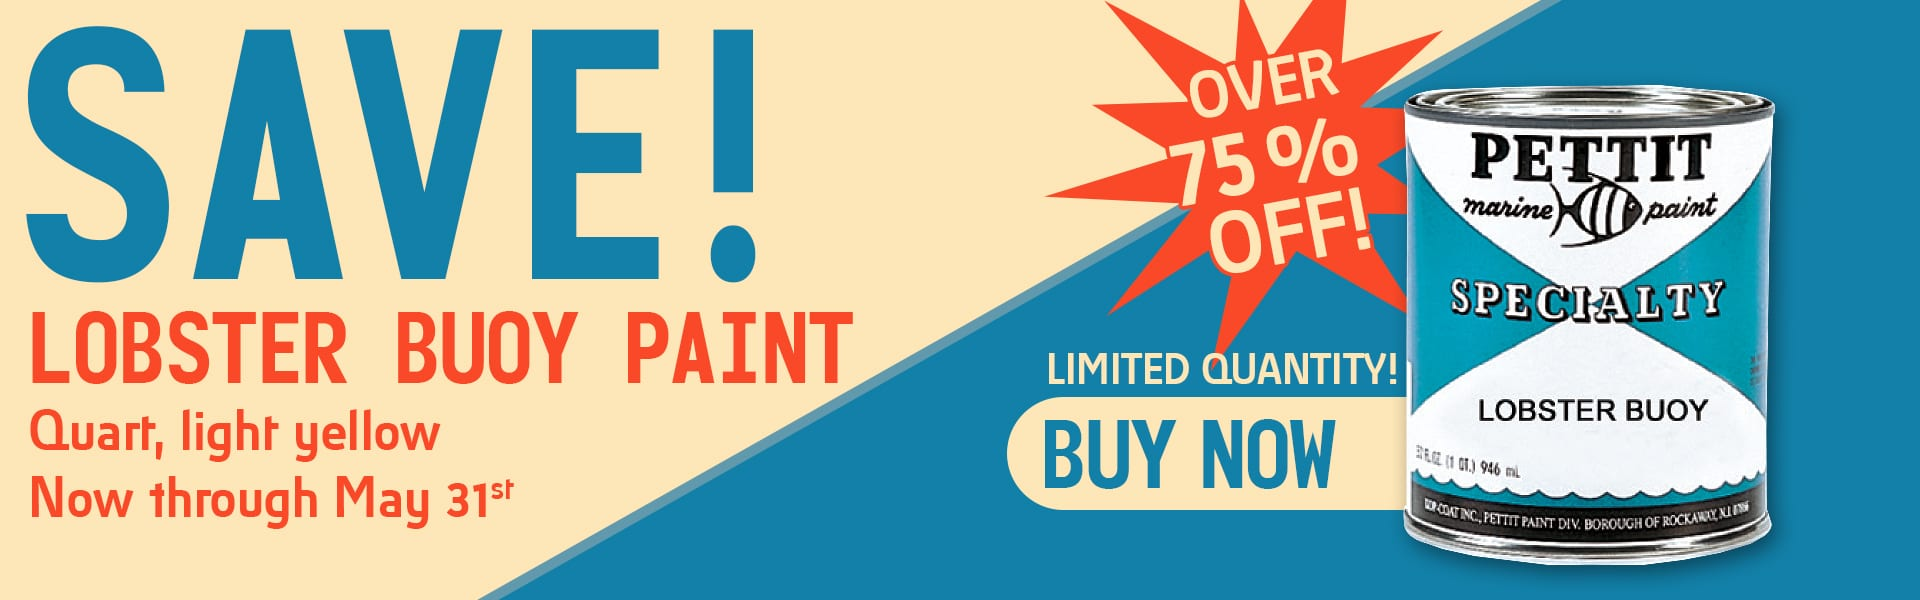 SAVE on Lobster Buoy Paint